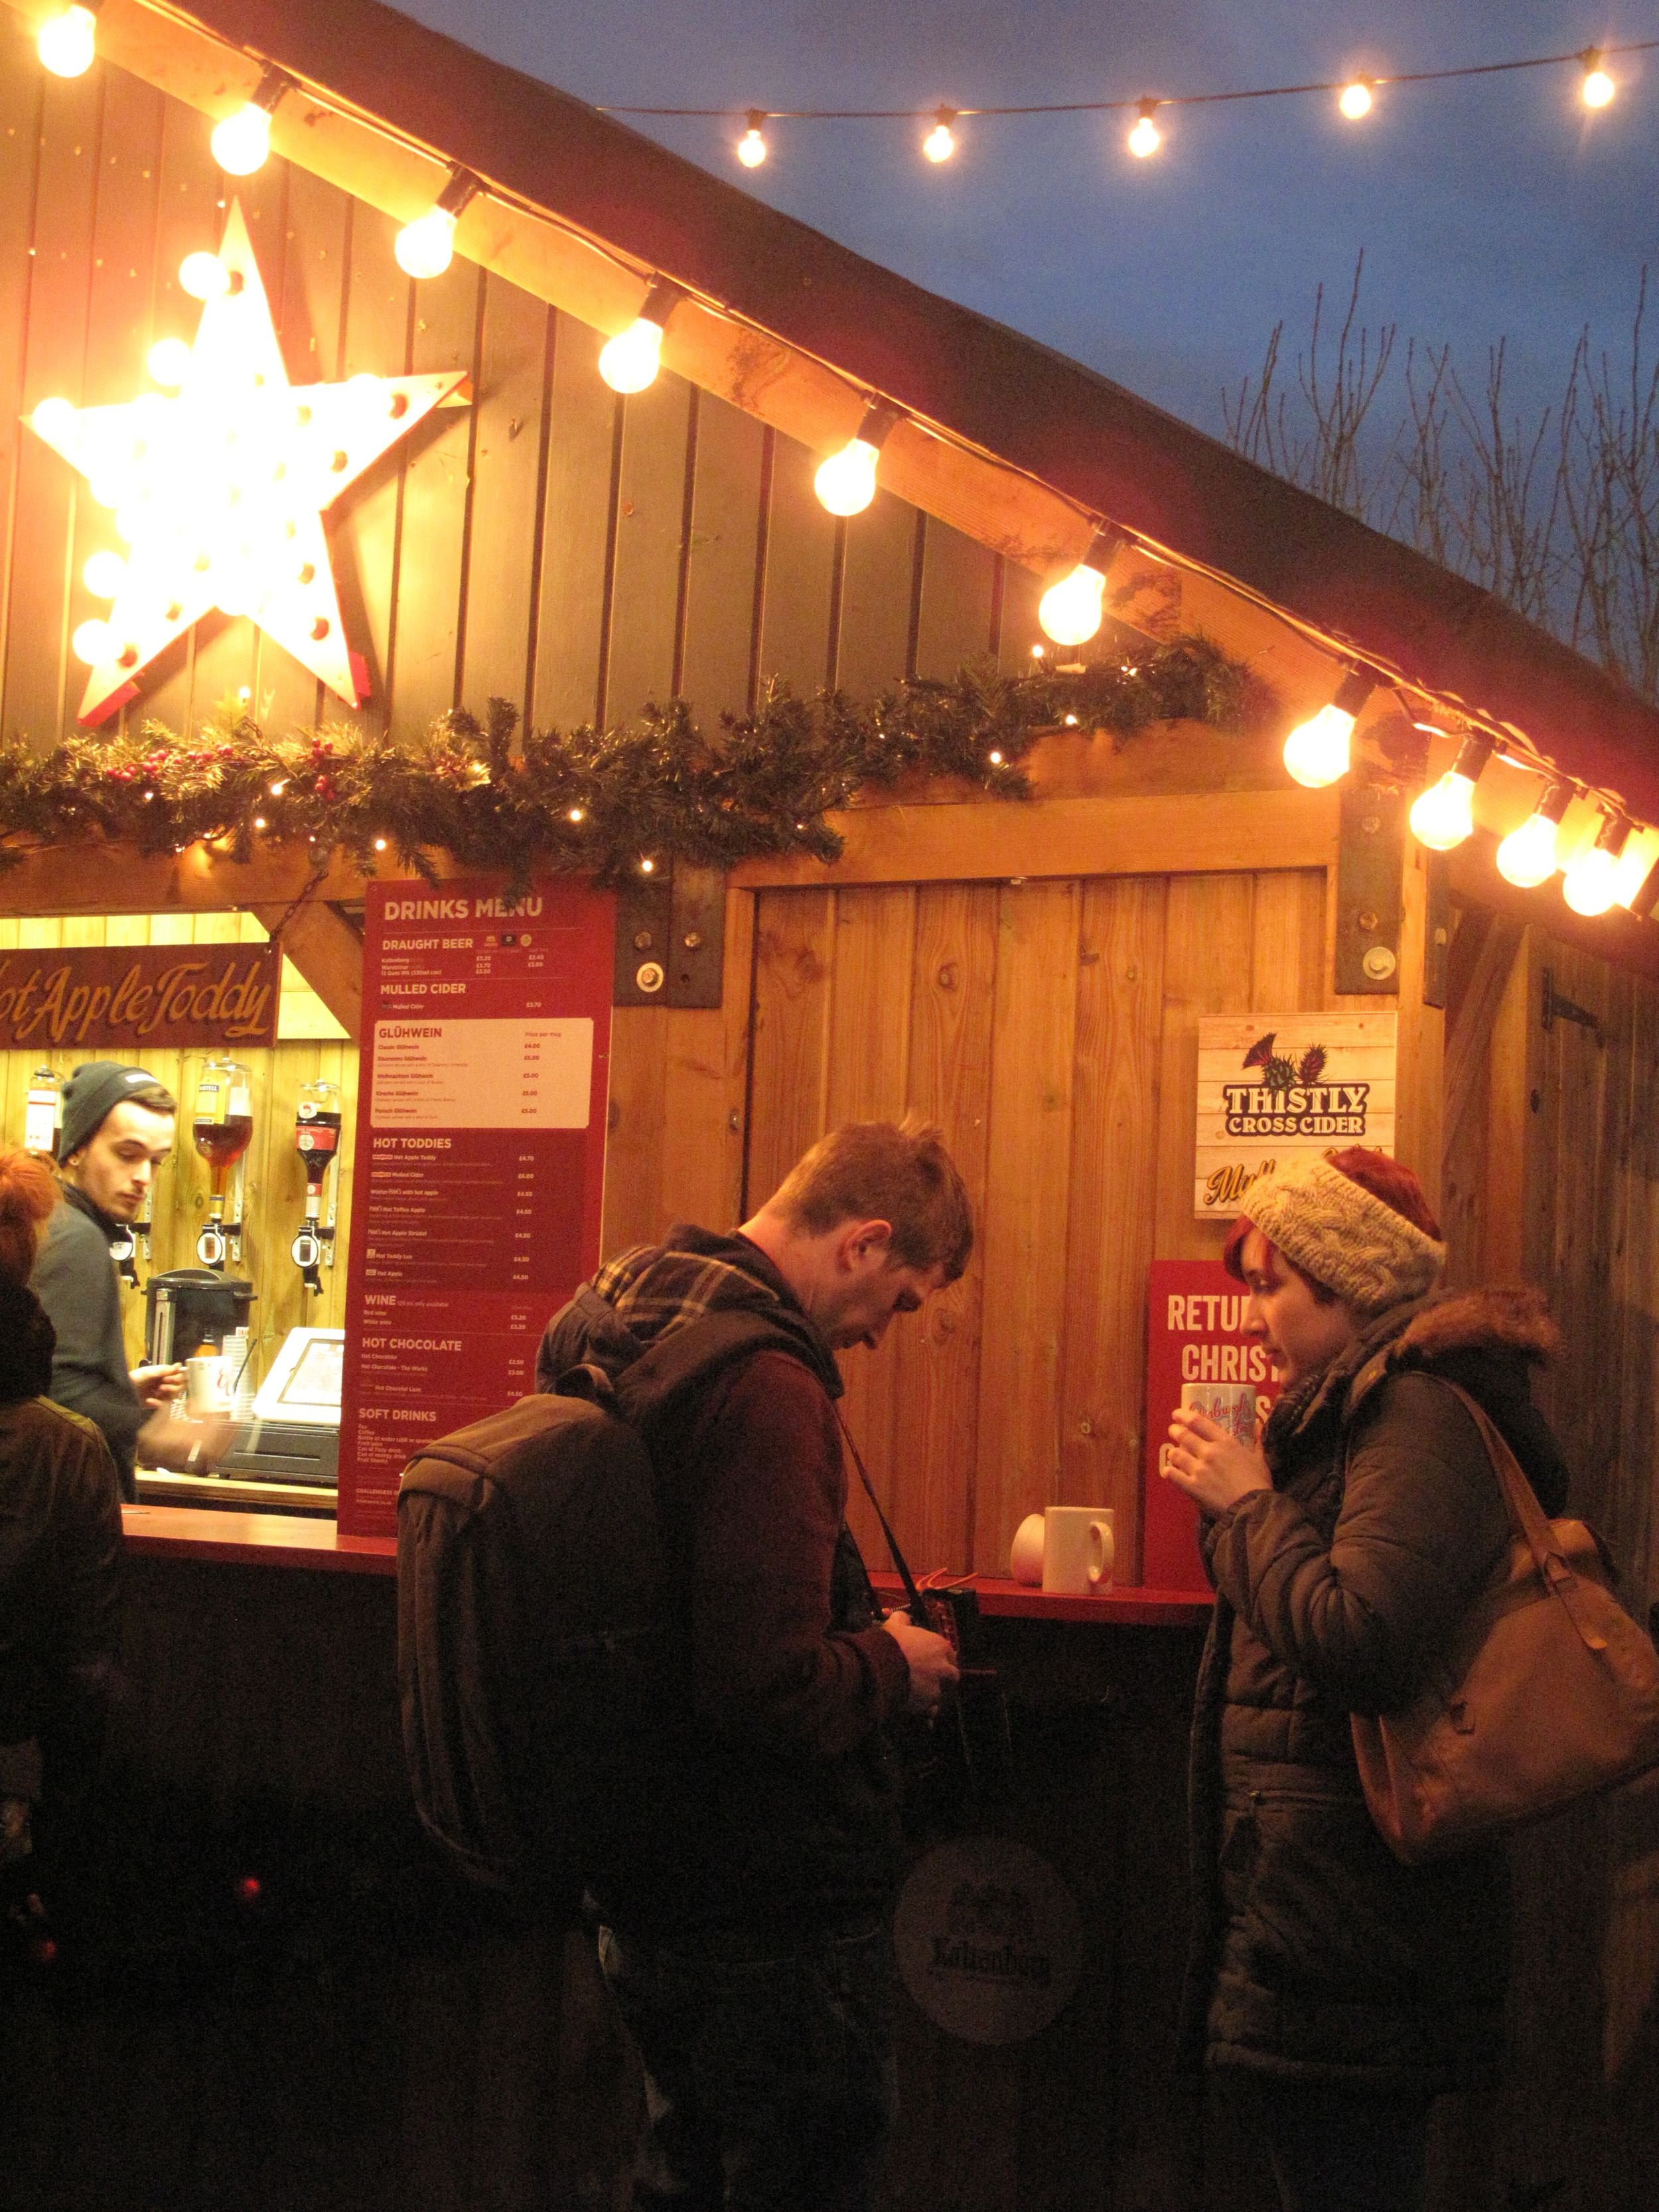 A couple enjoying a hot cider drink at a cart in the Edinburgh Christmas Market.